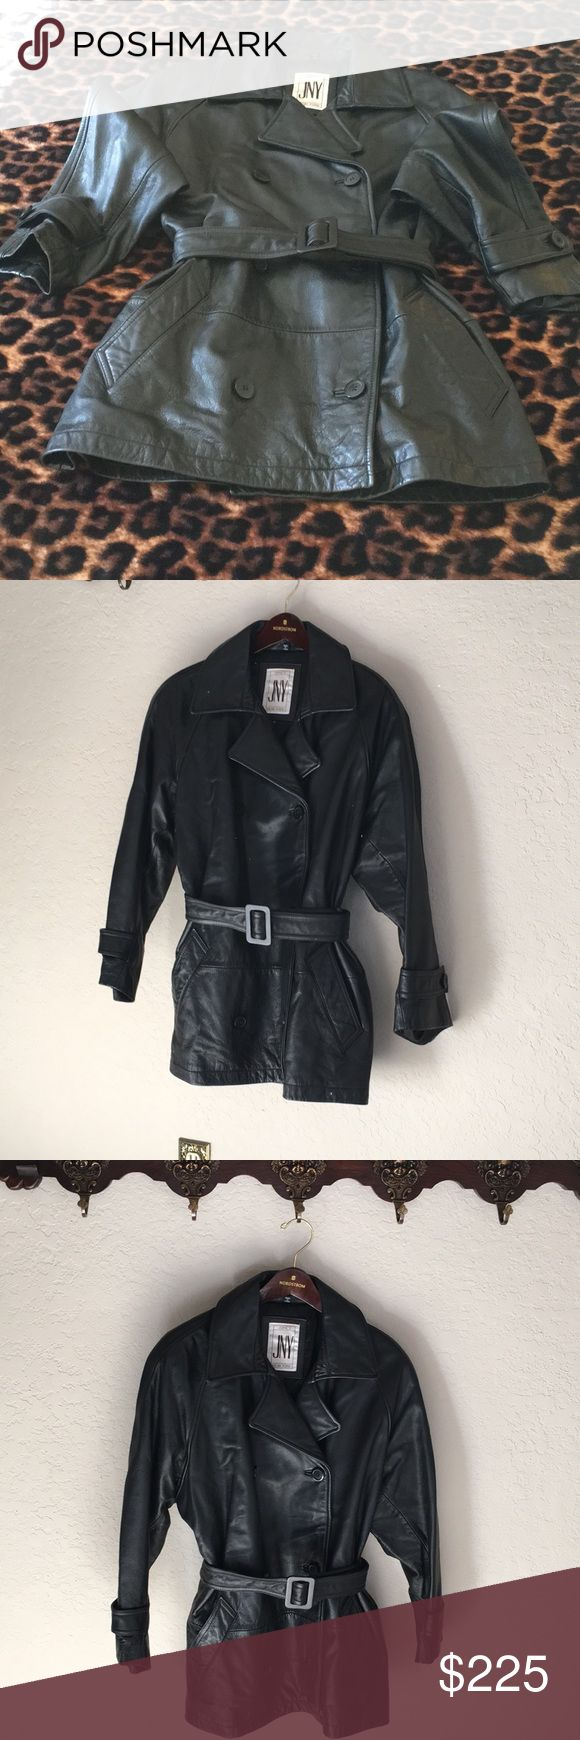 """Jones New York Leather Jacket/Excellent Condition! Fabulous Jones New York Leather Jacket! Wear with or without belt! Looks gorgeous either way! Excellent condition! Only worn a few times!   Width at belt 44"""" Length from back collar 32"""" Jones New York Jackets & Coats"""